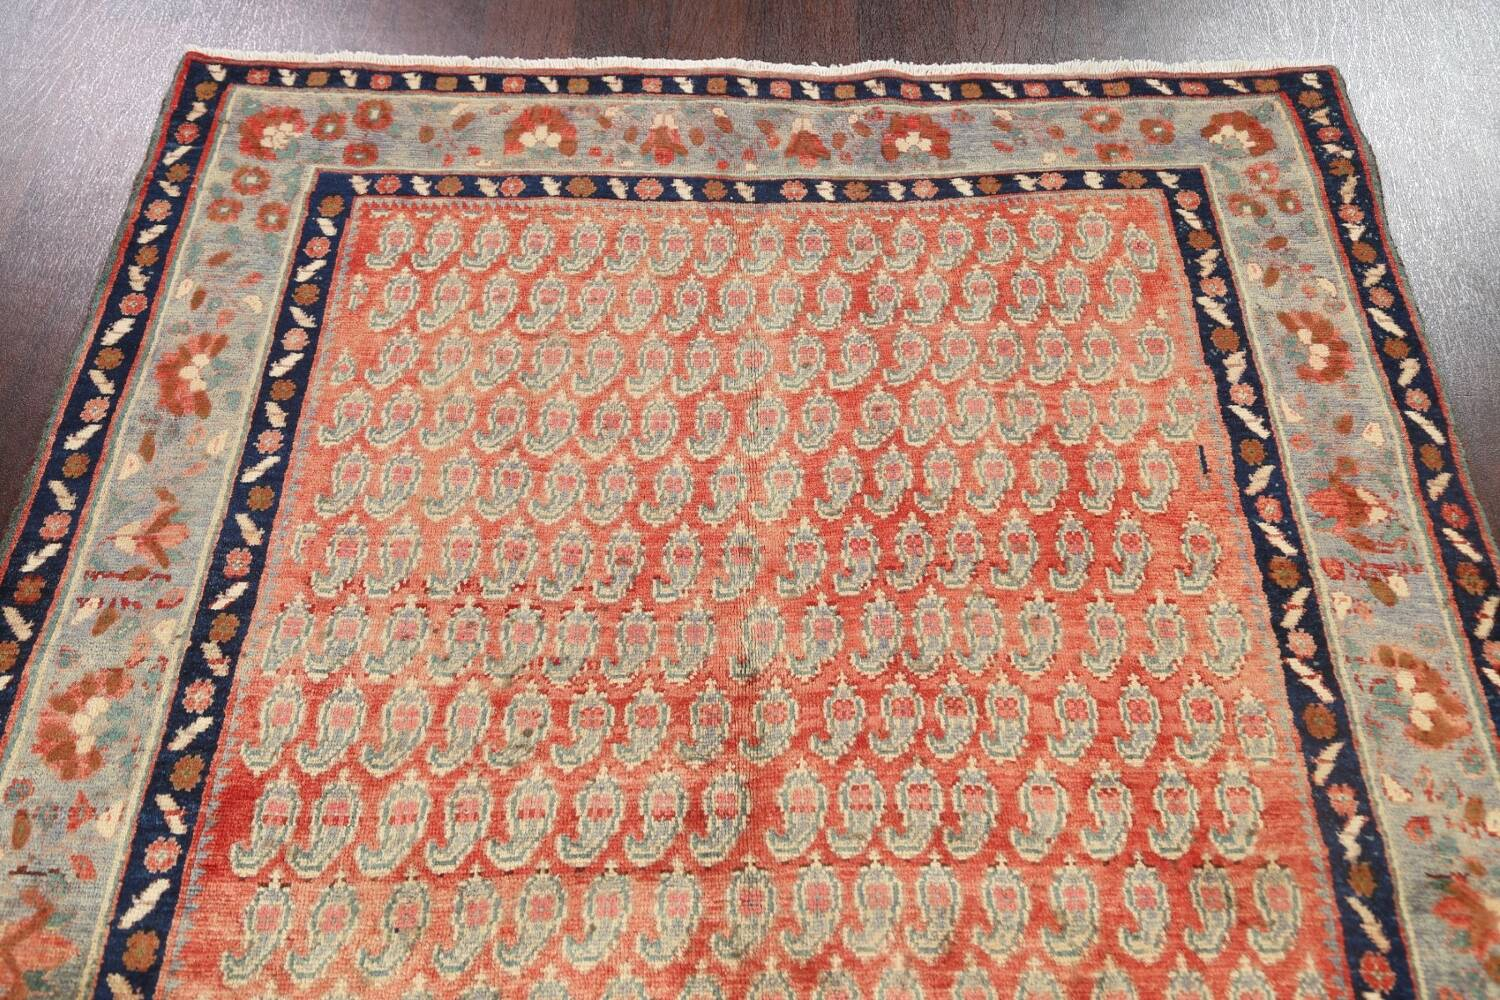 All-Over Boteh Botemir Persian Area Rug 5x7 image 11